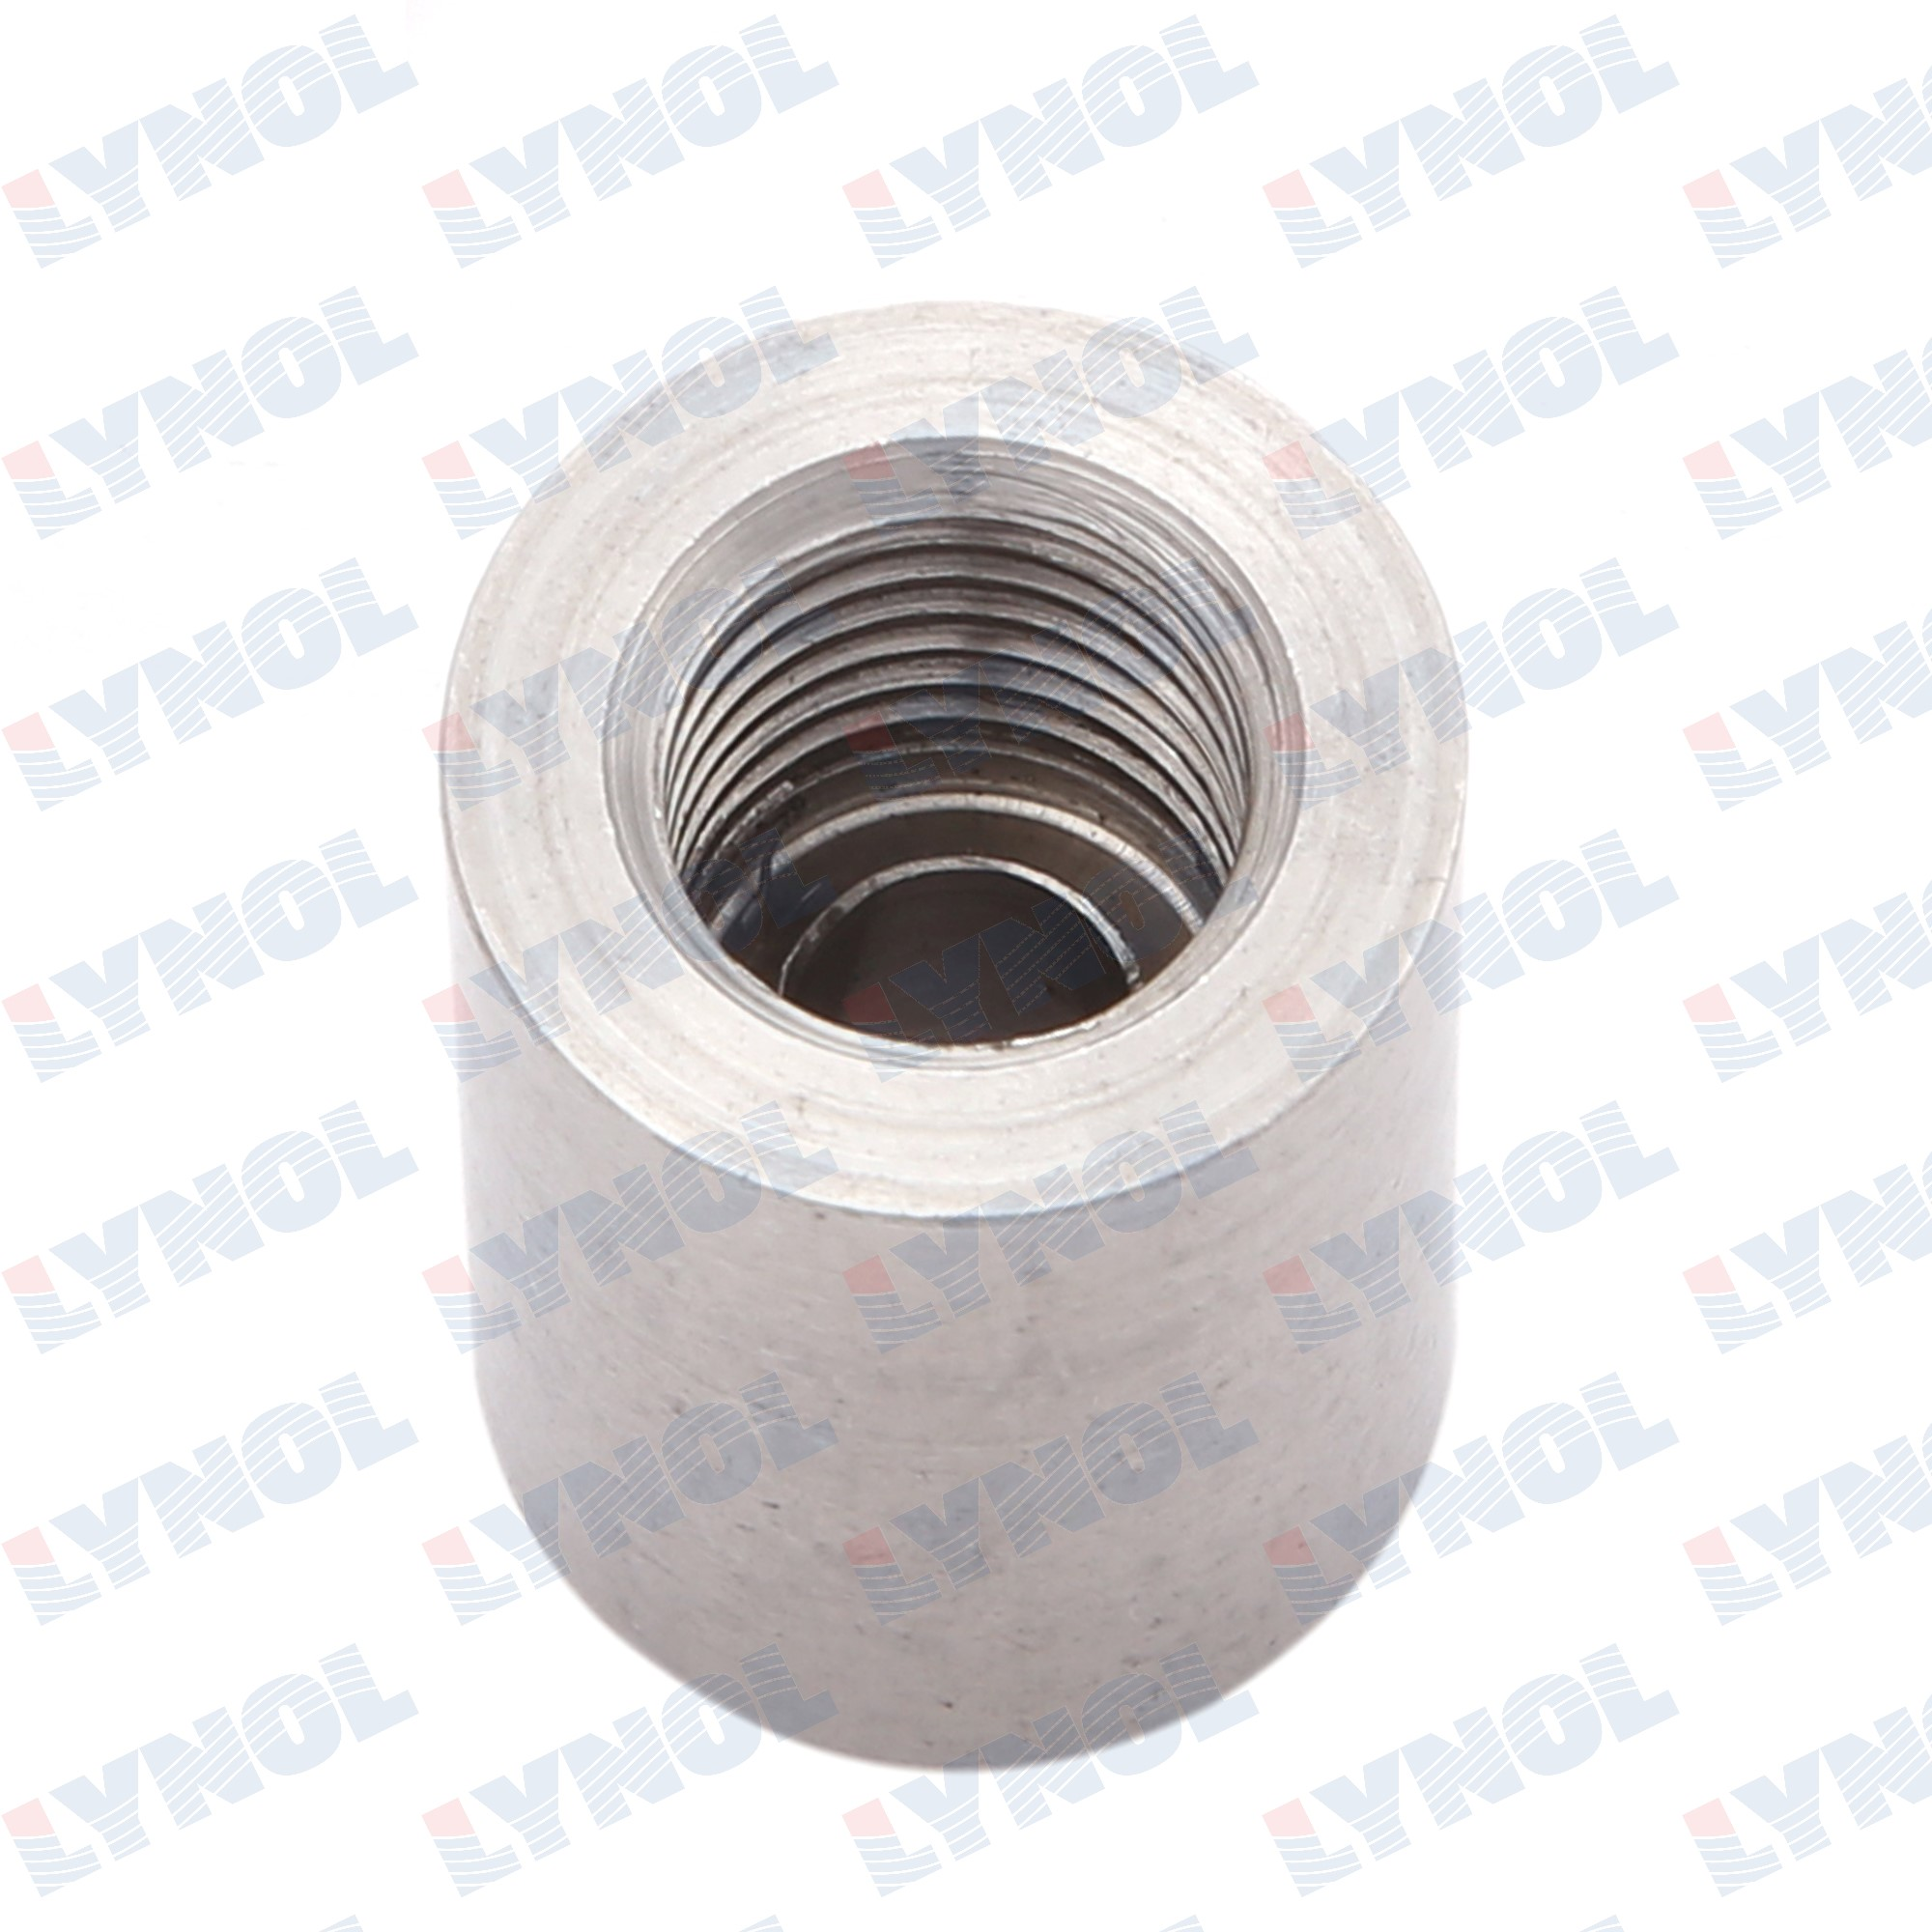 4504005 - SENSOR BUNG - M12*1.5 - Reverse Flare Overall Length 1'', Outside Diameter 3/4''